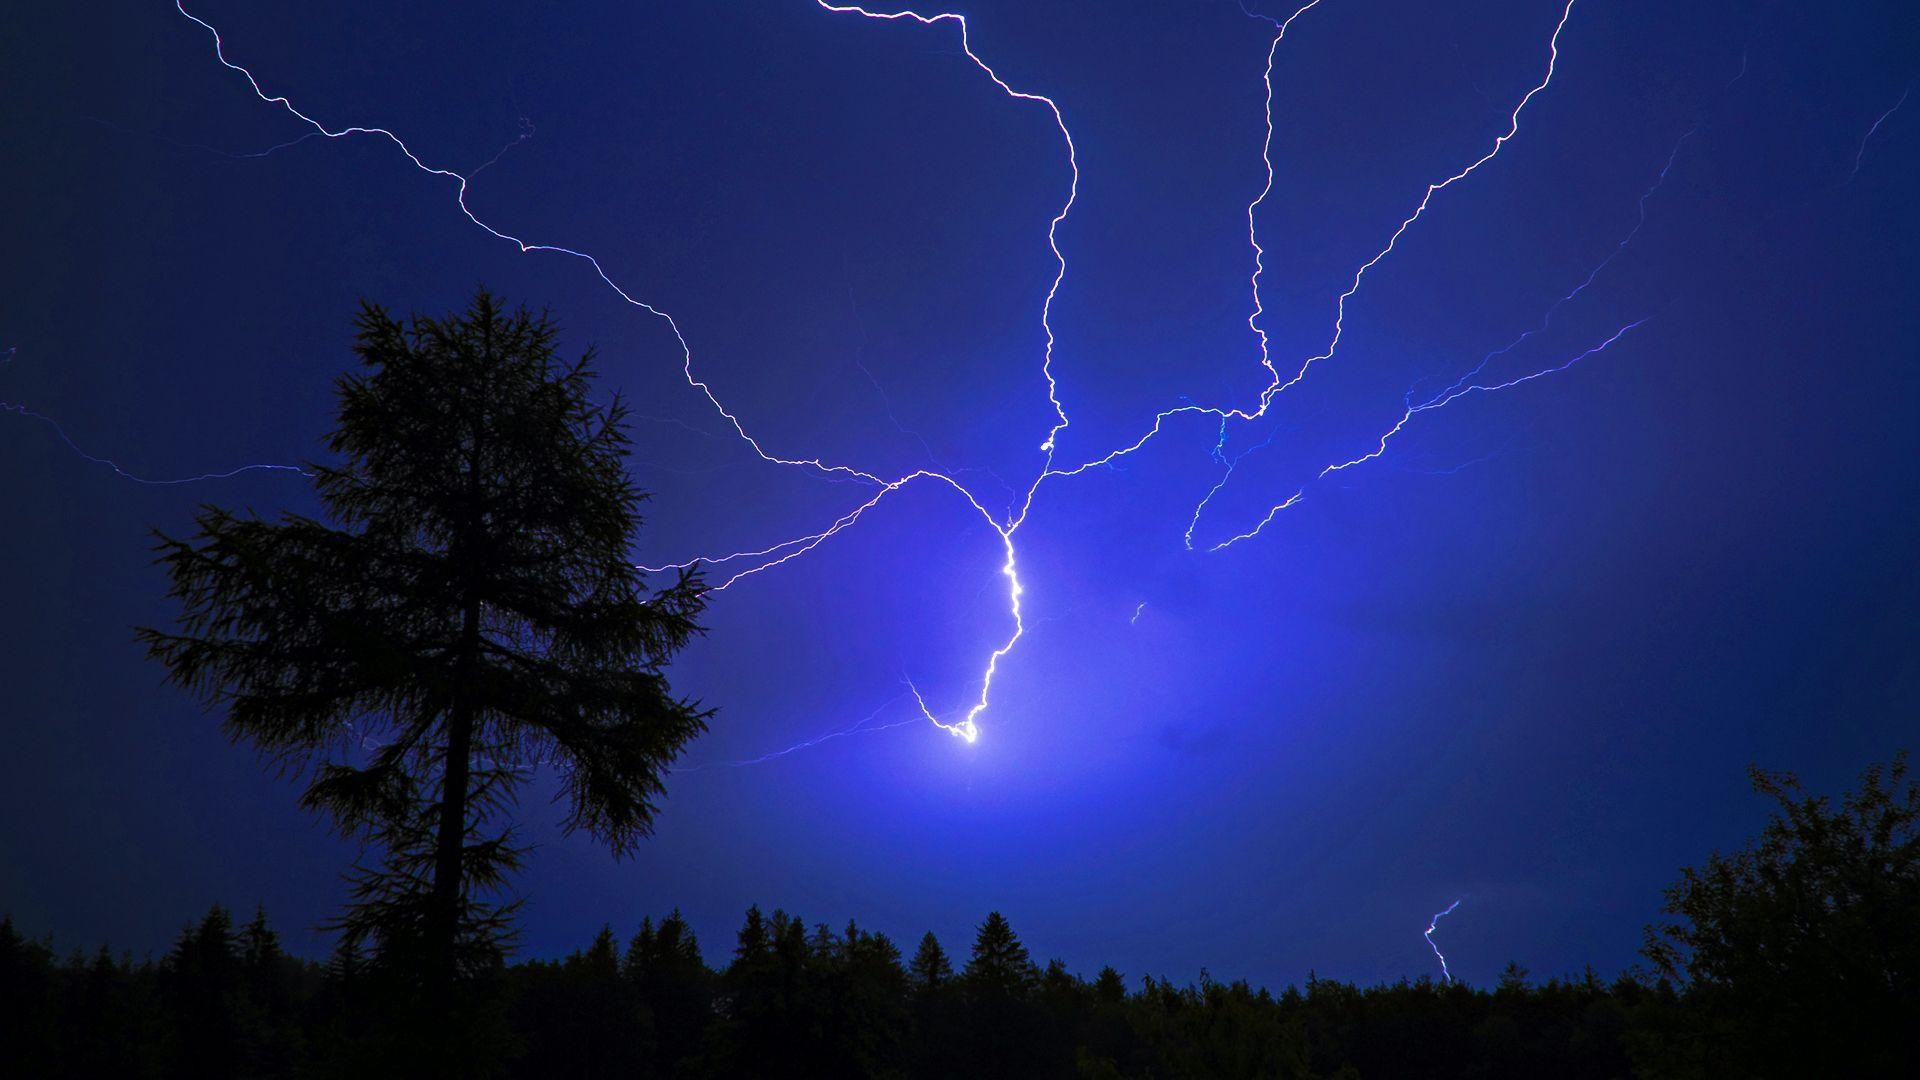 Res: 1920x1080, Free Thunderstorm Wallpaper 4415